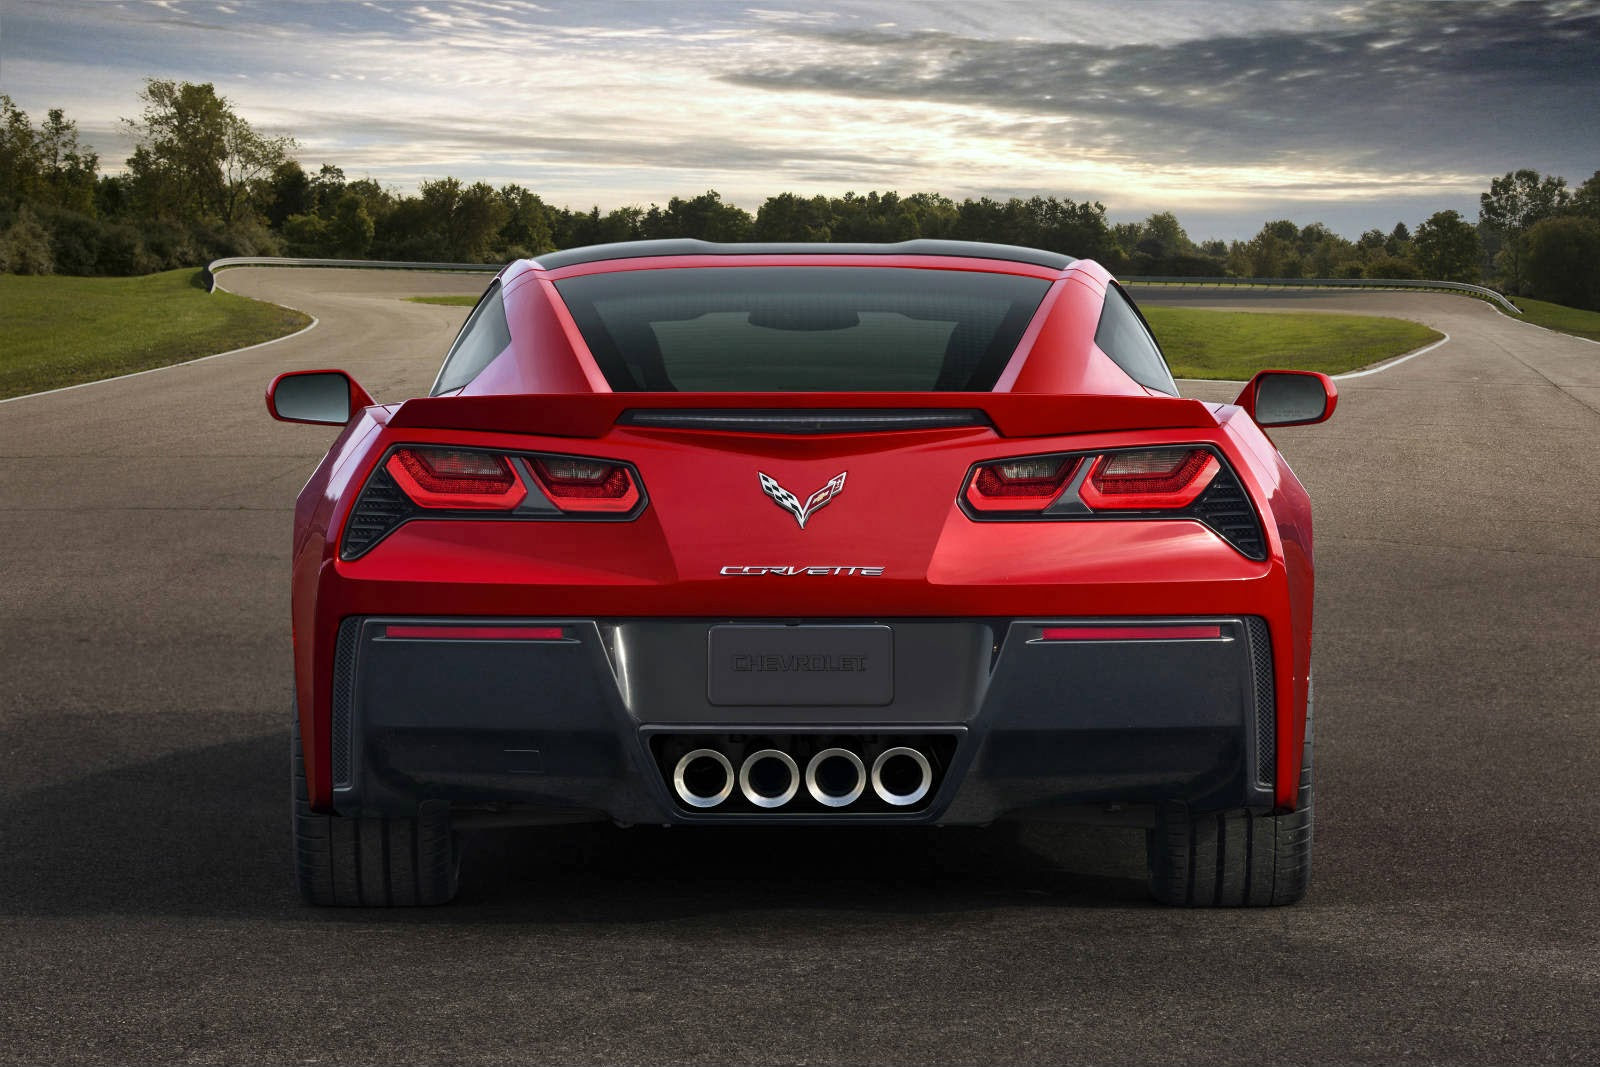 Chevrolet Corvette Stingray 2014 - Actualité Automobile